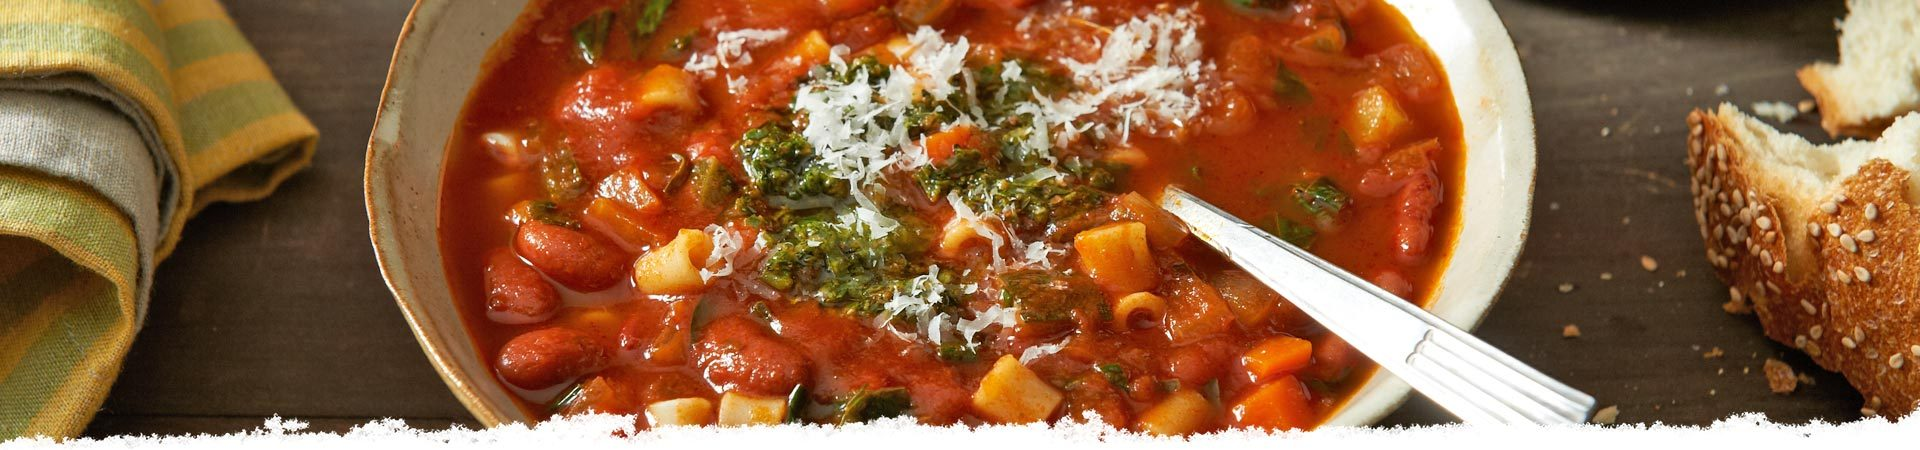 Balsamic Minestrone Soup